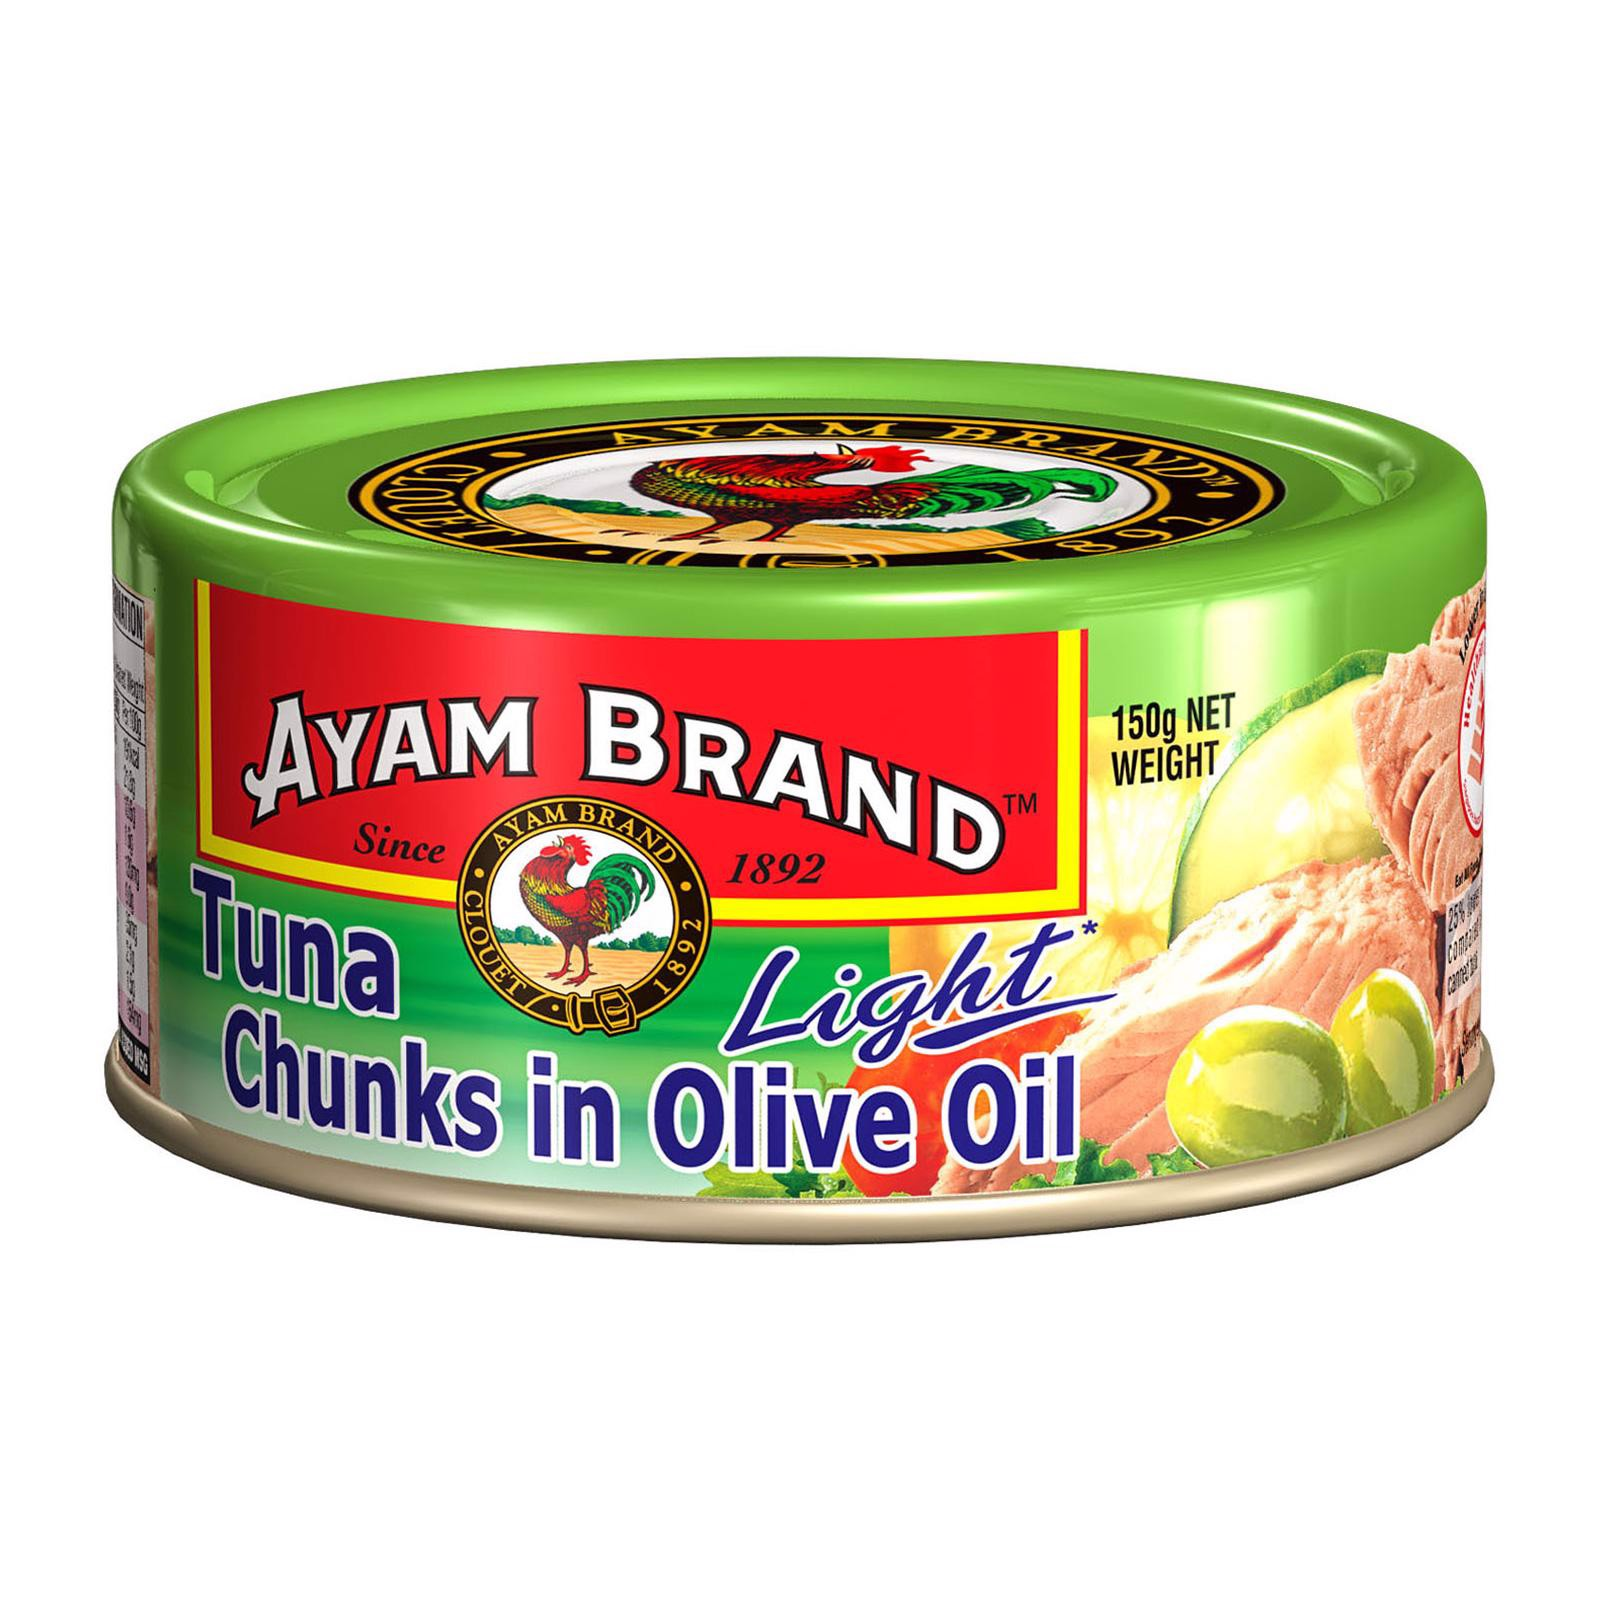 Tuna Chunks In Olives Oil hiệu Ayam Brand lon 150g